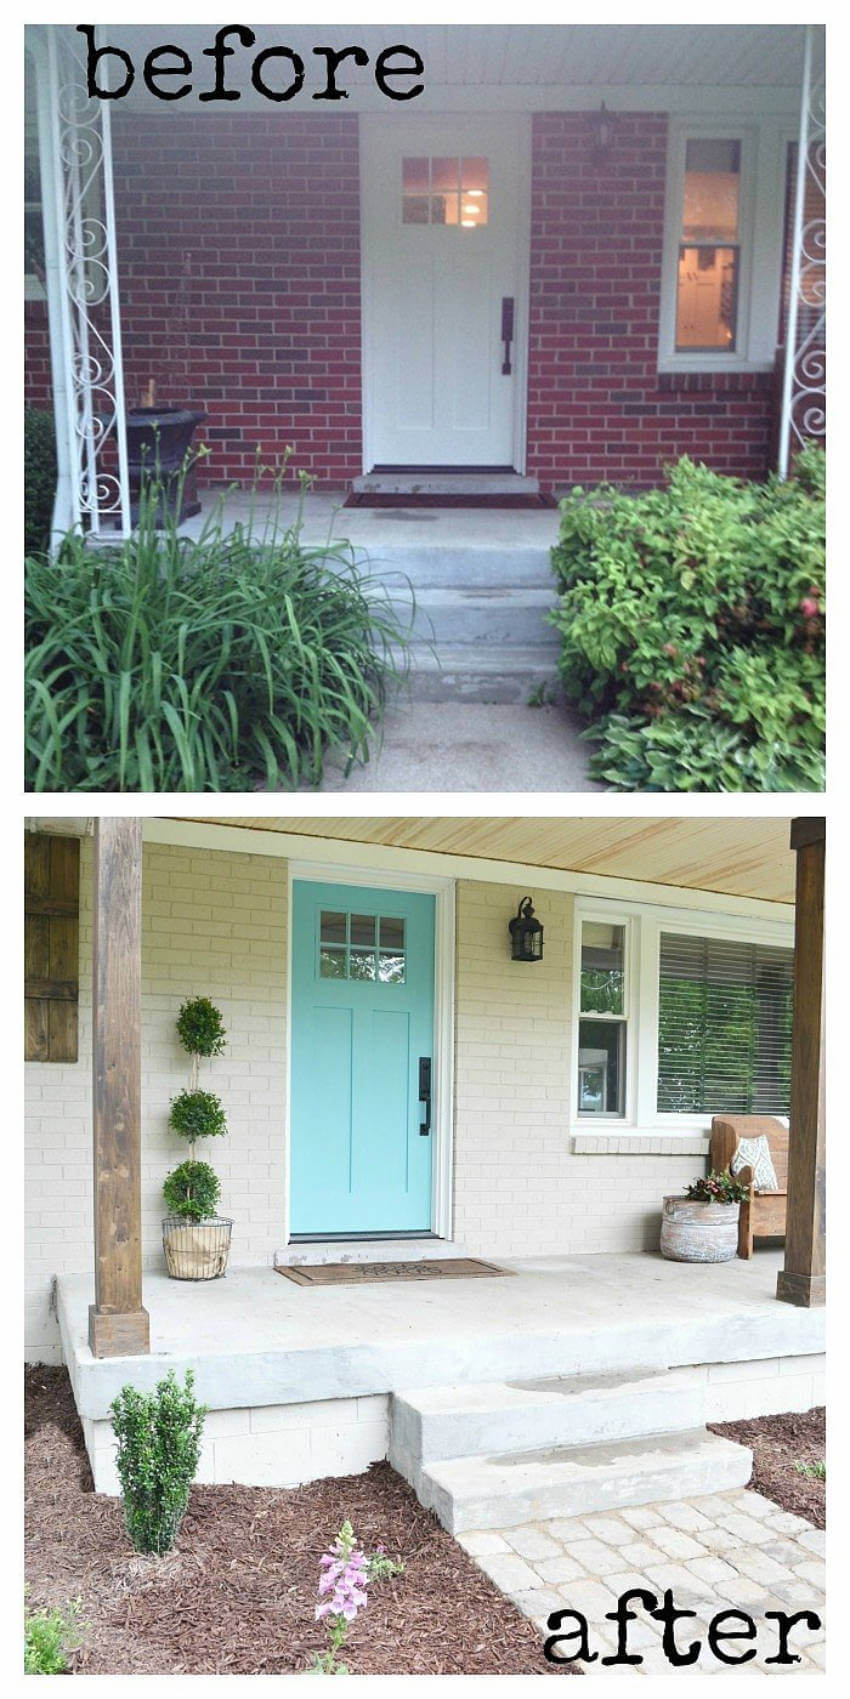 A colorful front door can make any house more joyful